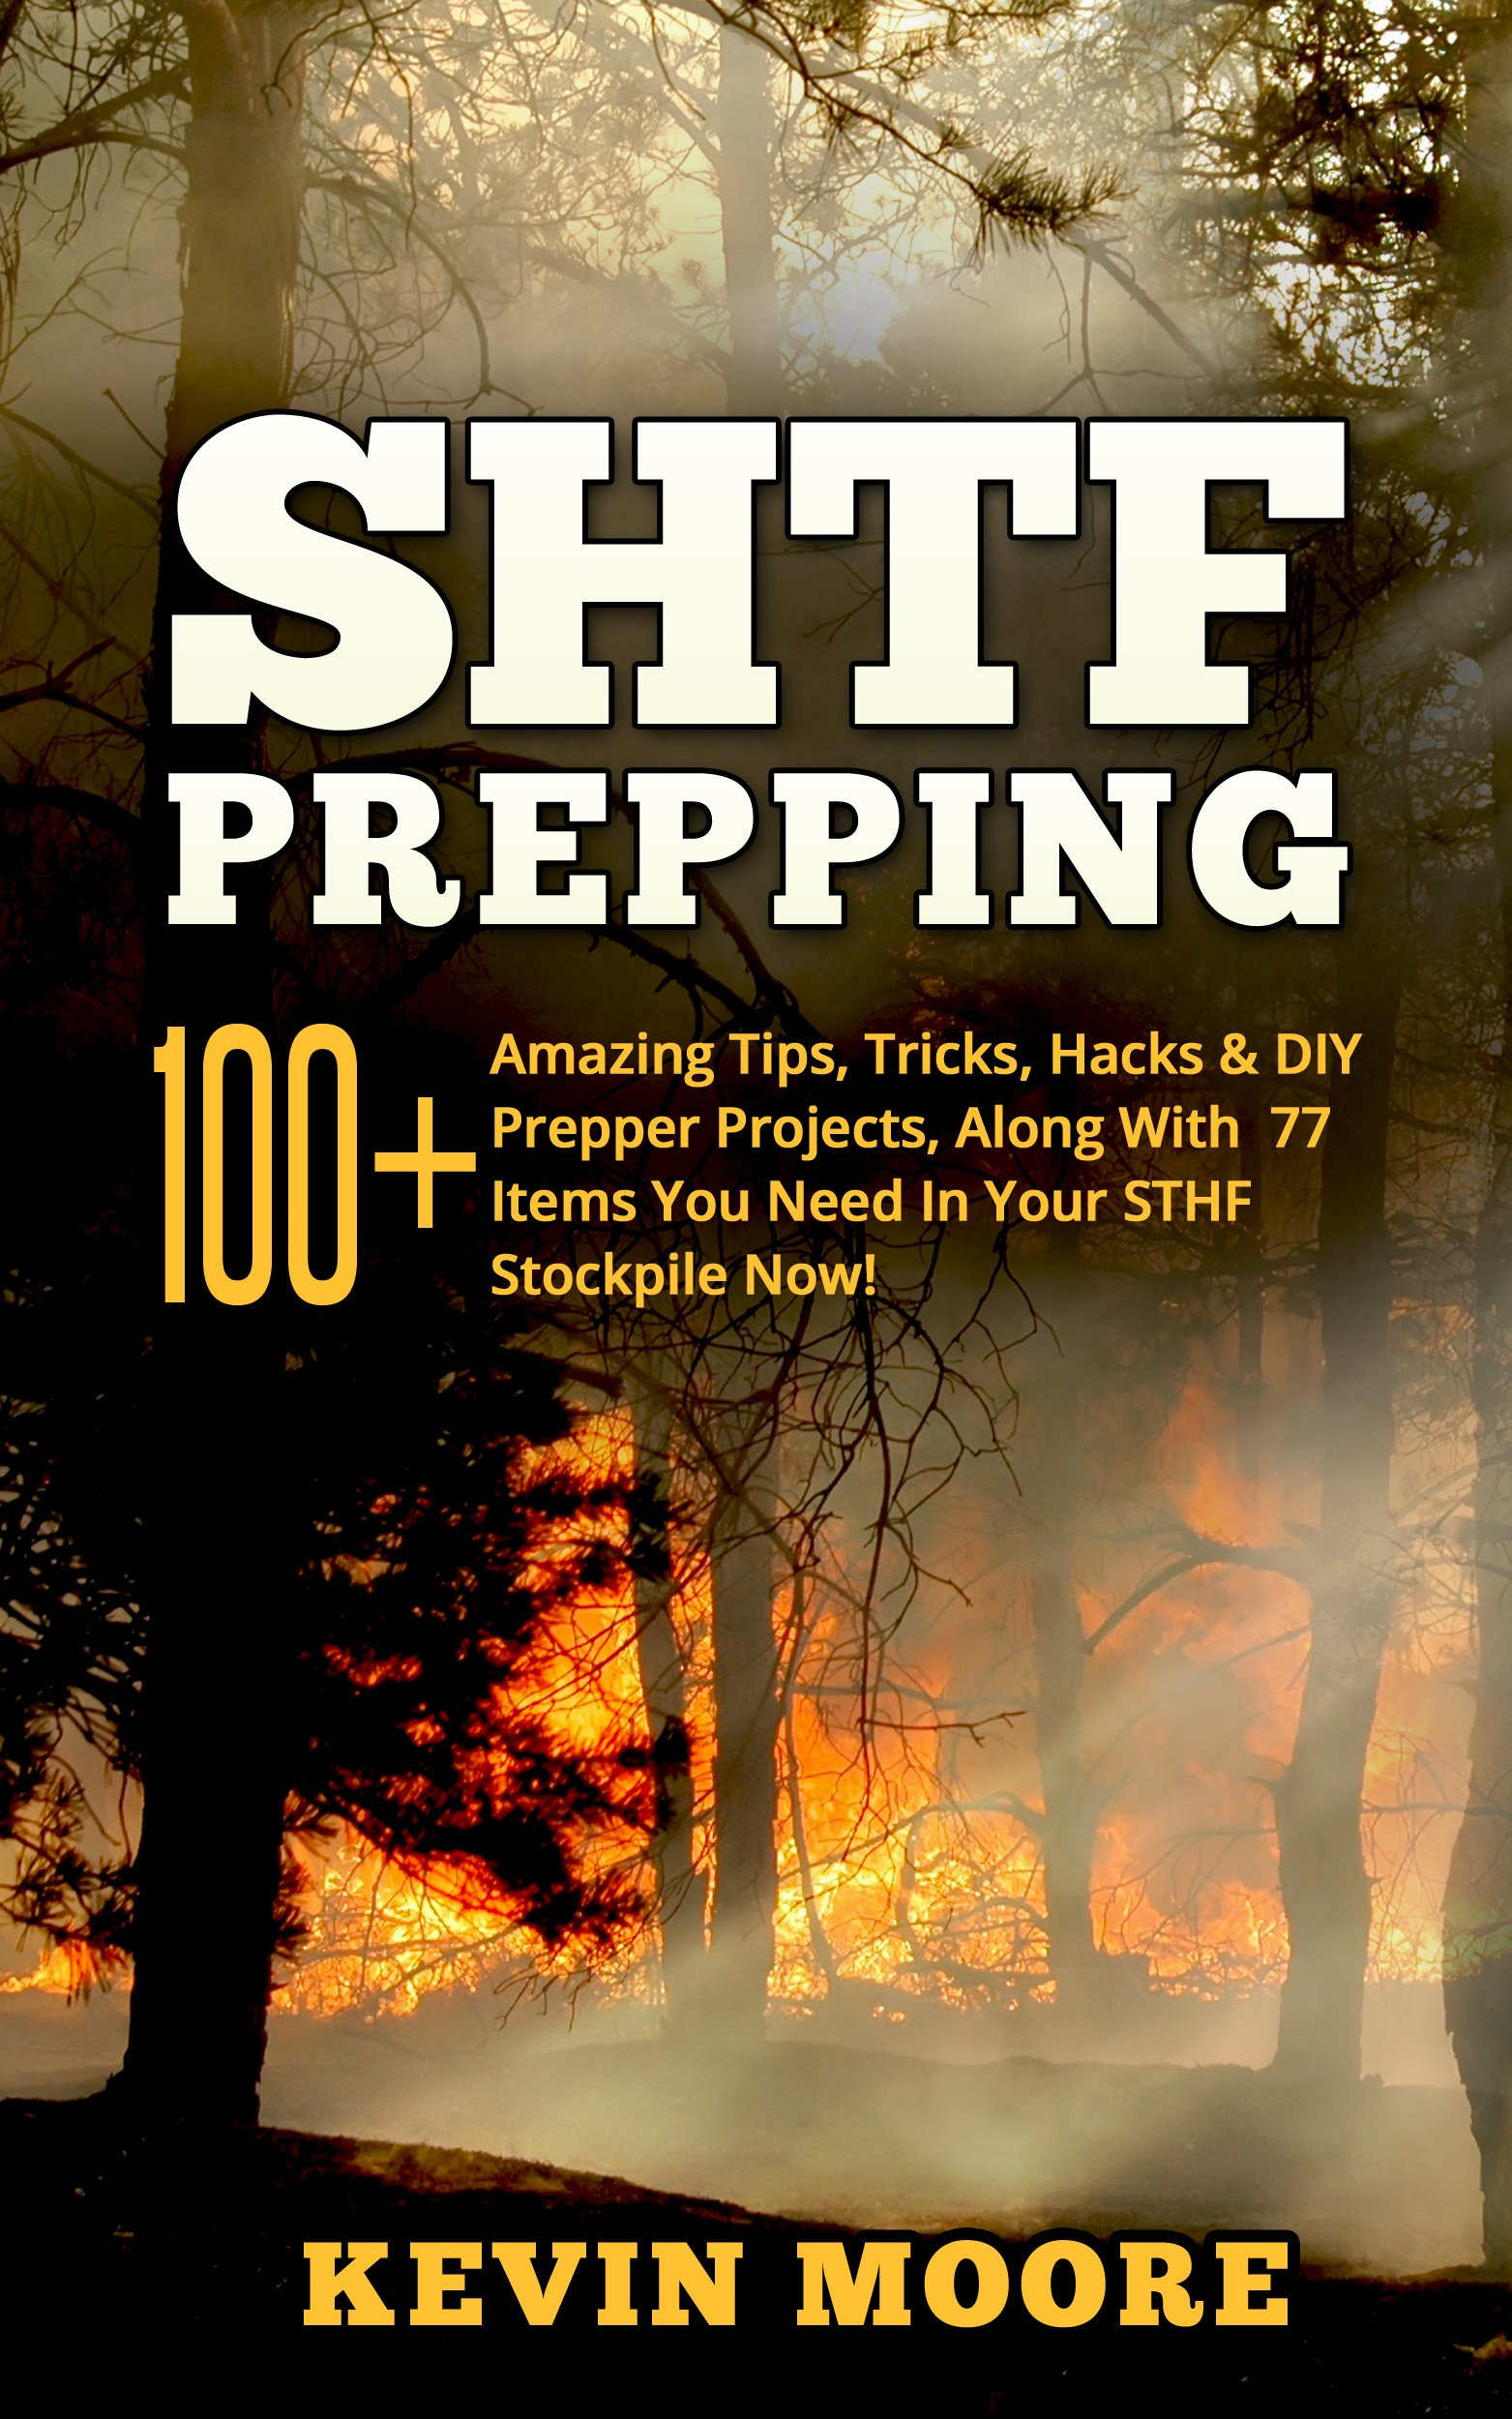 SHTF Prepping  100+ Amazing Tips Tricks Hacks And DIY Prepper Projects Along With 77 Items You Need In Your STHF Stockpile Now   Off Grid Living SHTF ... And Disaster Preparedness   English Edition